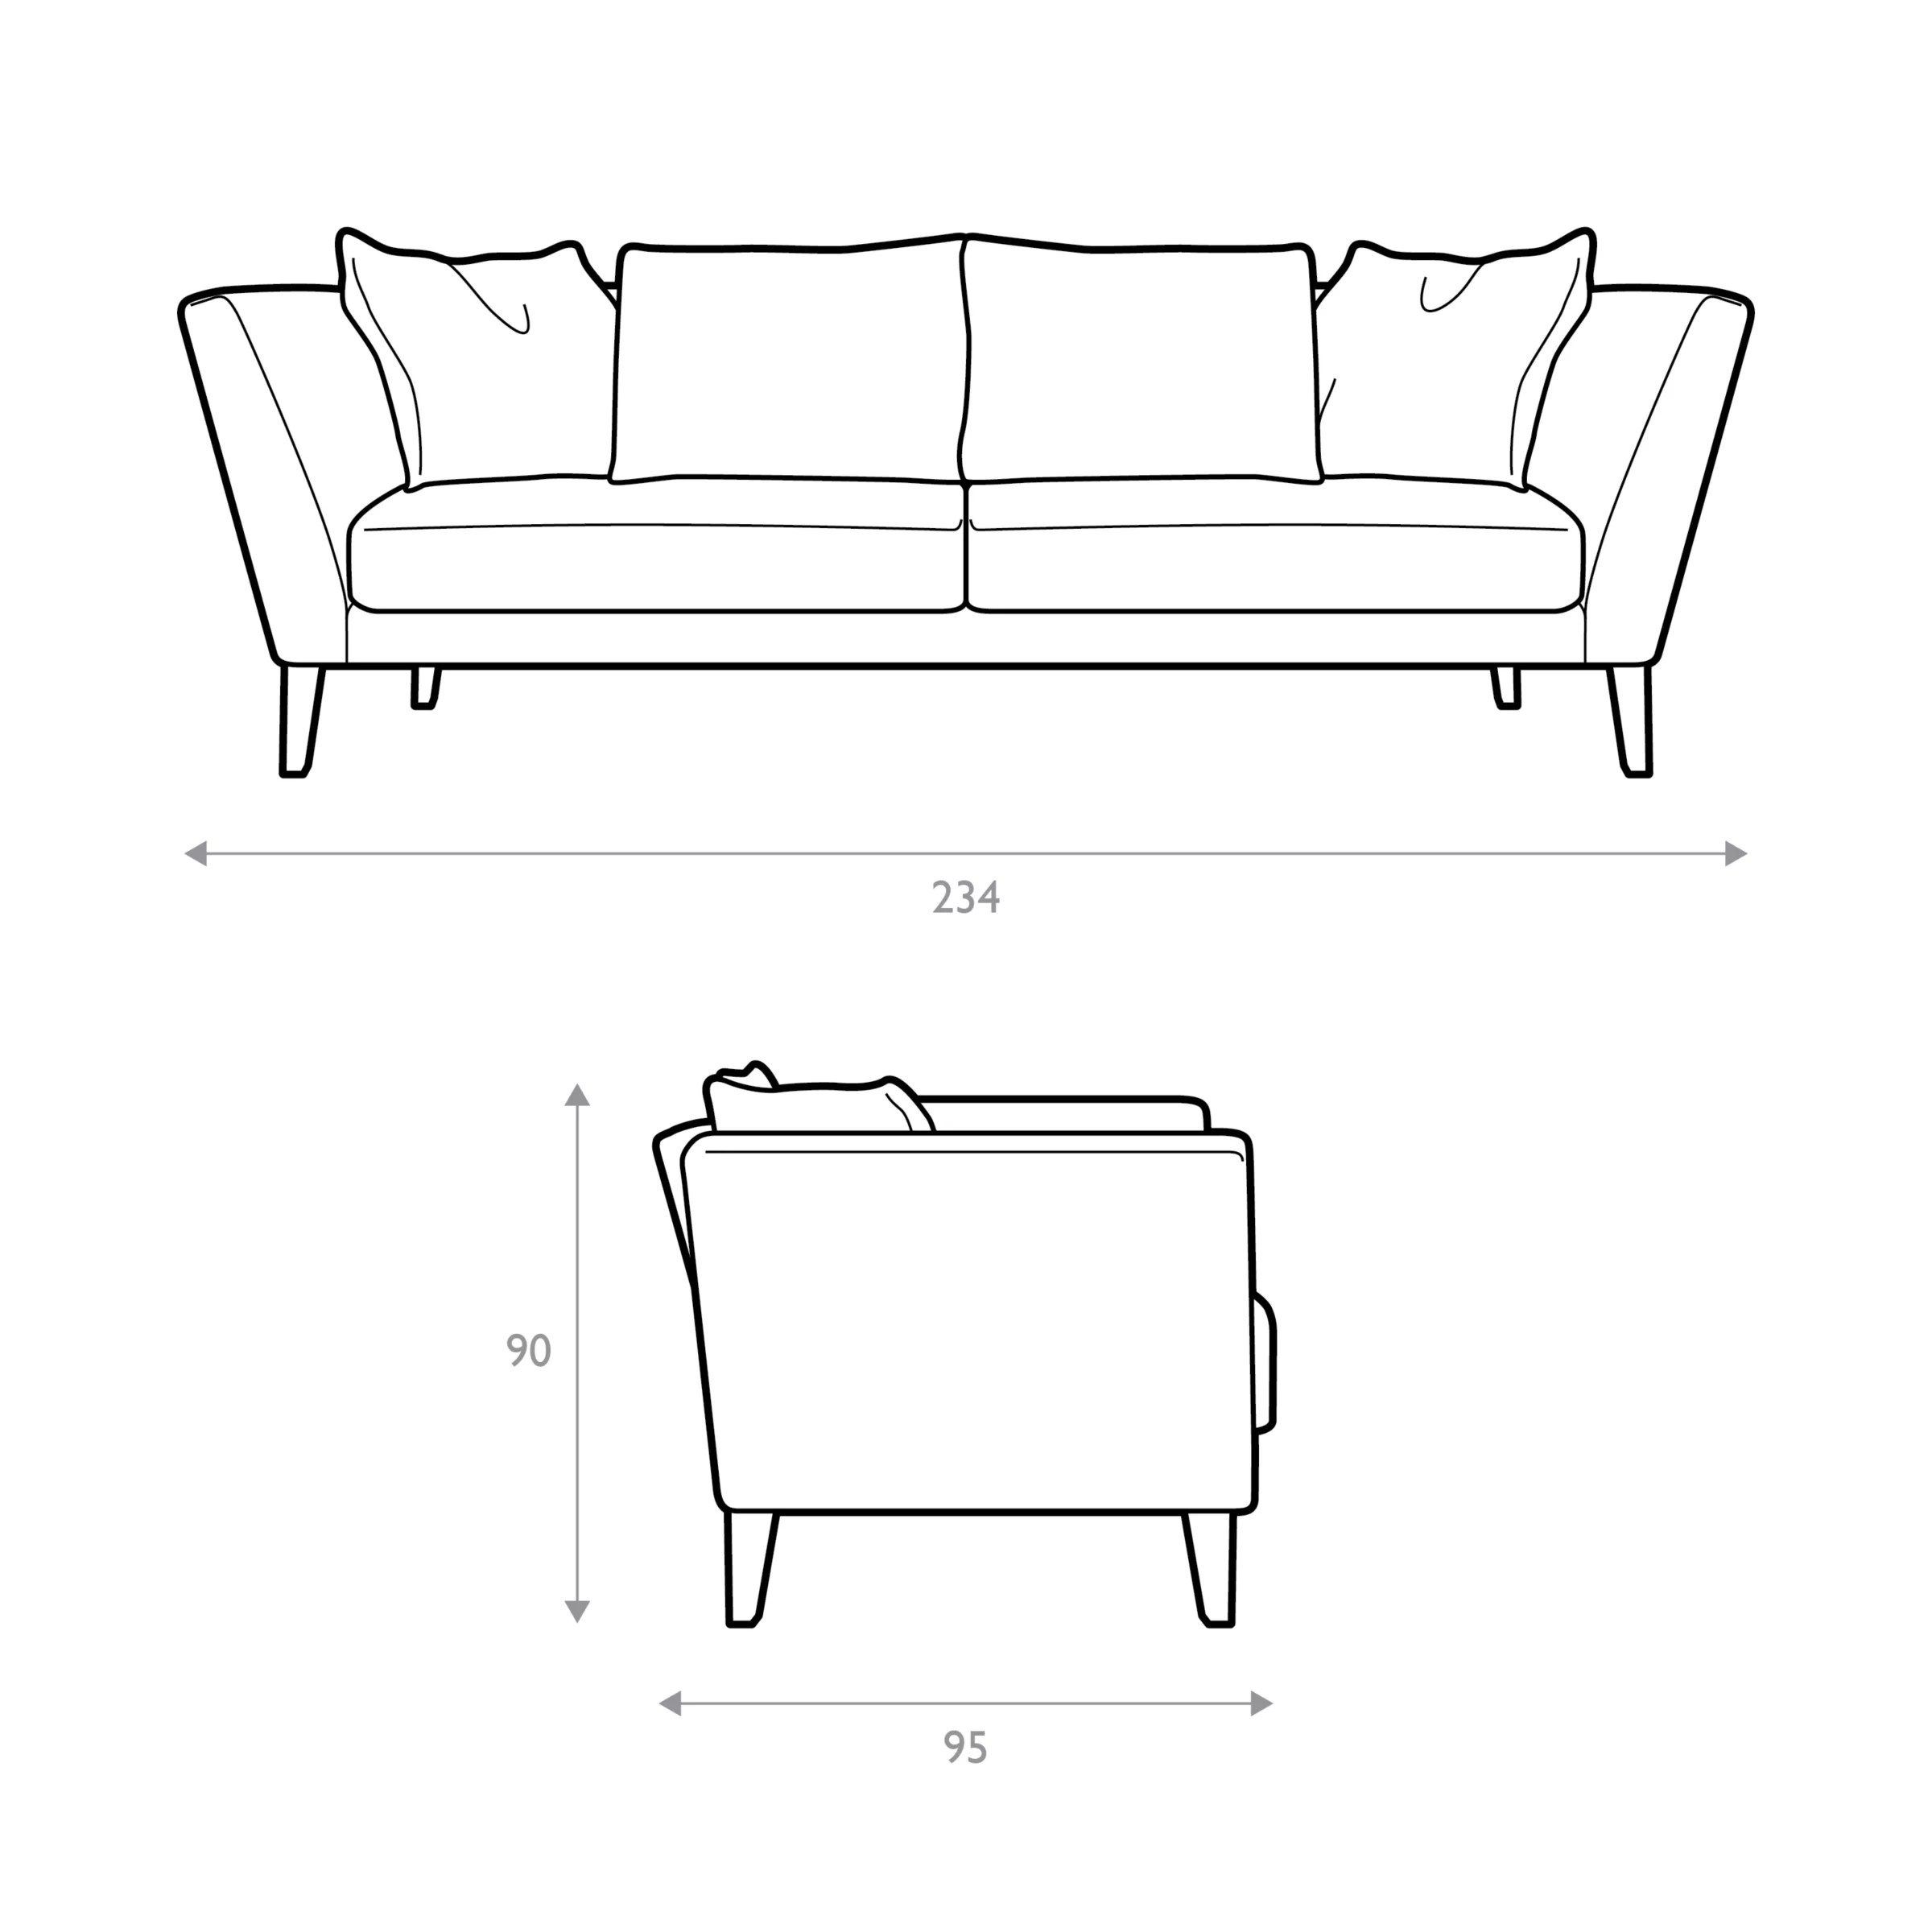 regency sofa john lewis single seater designs grand escher smoke at partners buyjohn online johnlewis com